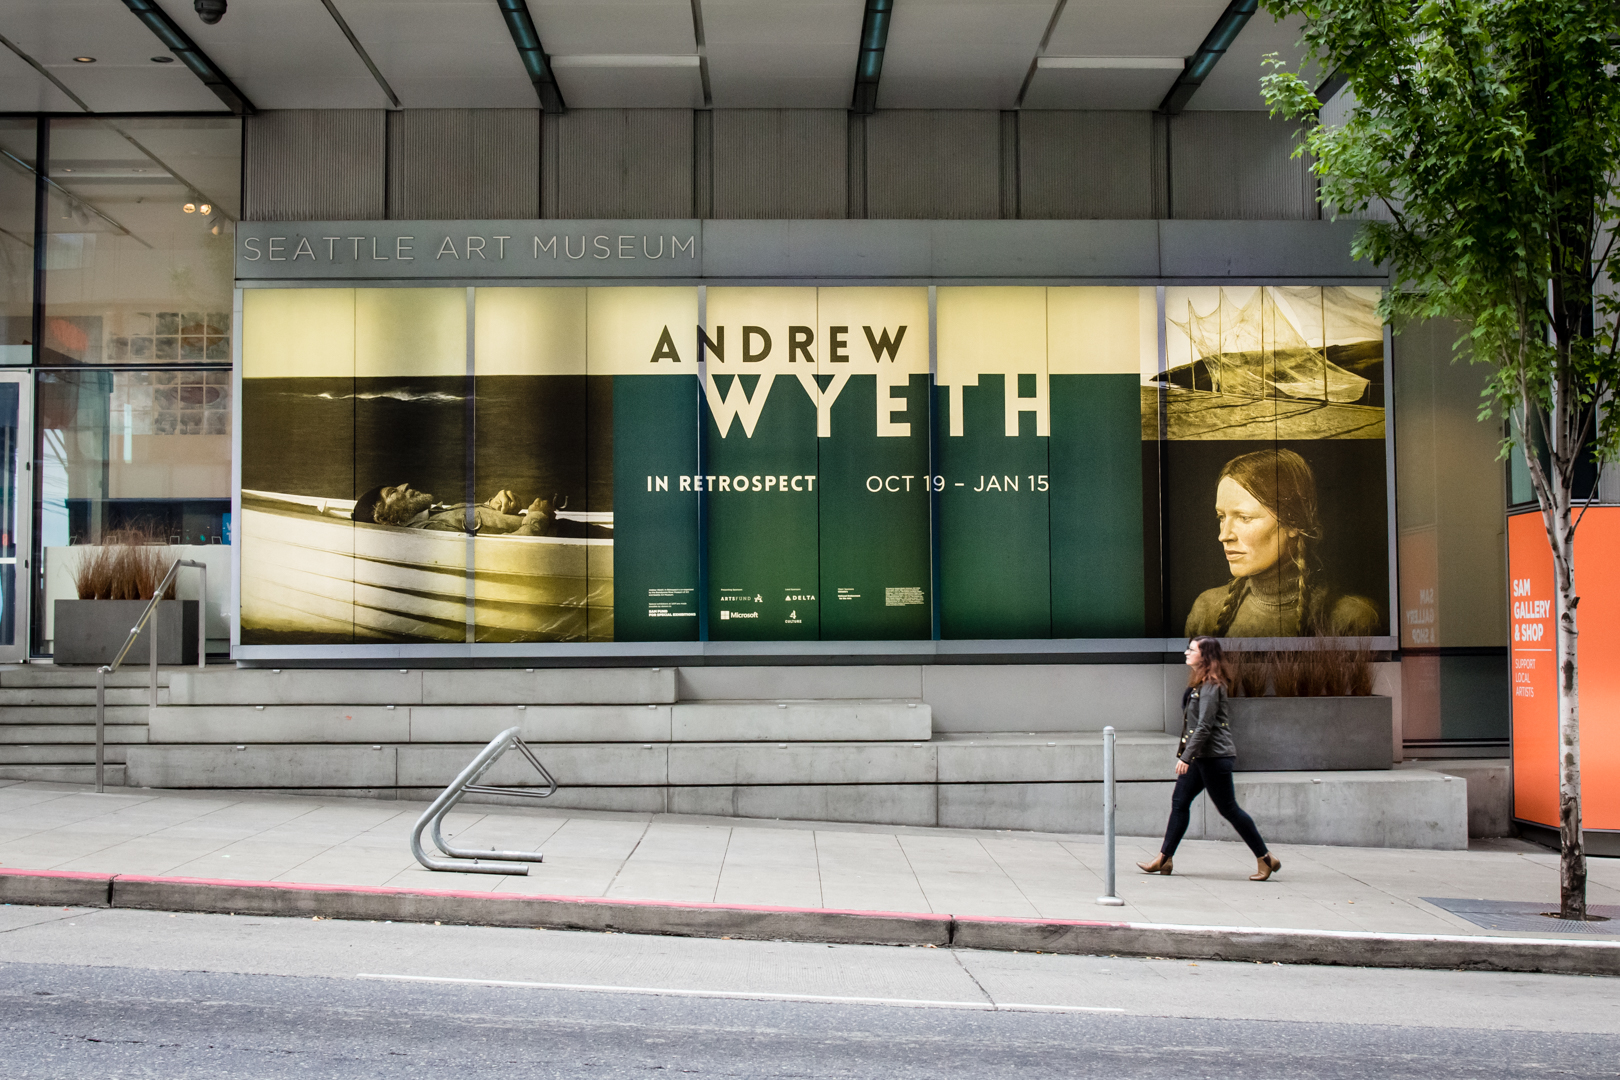 A view of our building exterior advertising Andrew Wyeth: In Retrospect at Seattle Art Museum